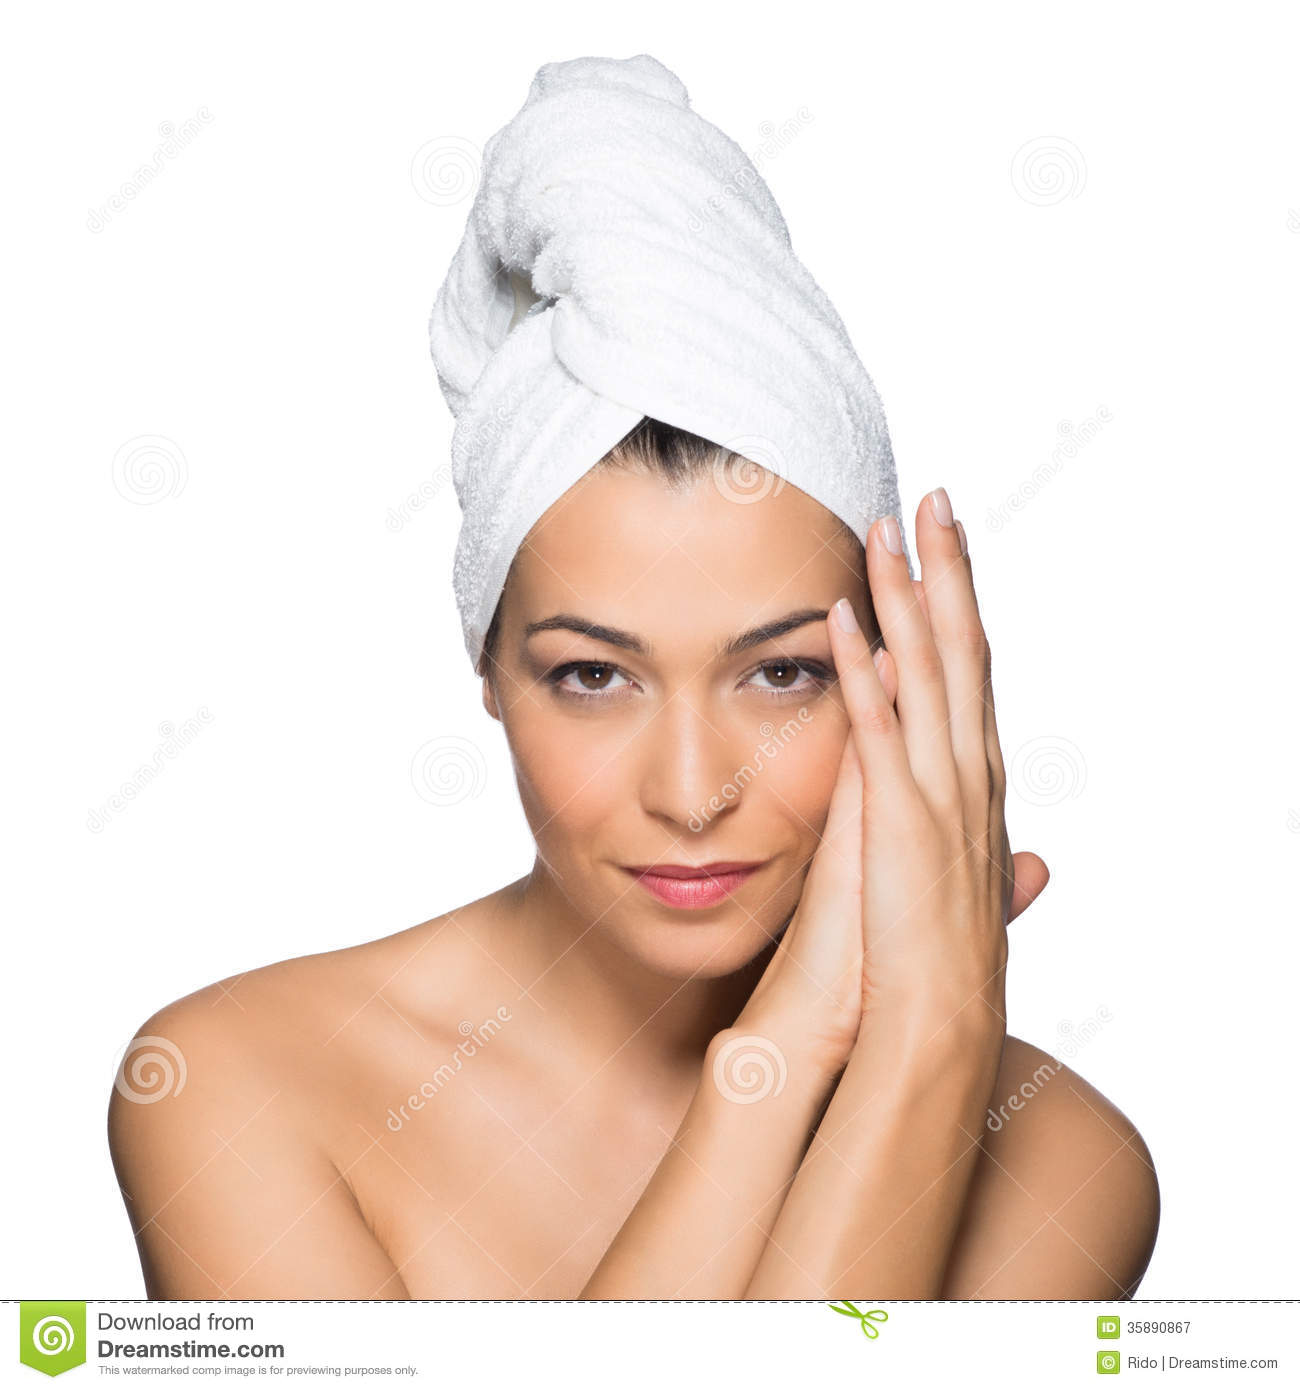 Beauty Portrait Of Smiling Woman With Towel On Head Isolated On White ...